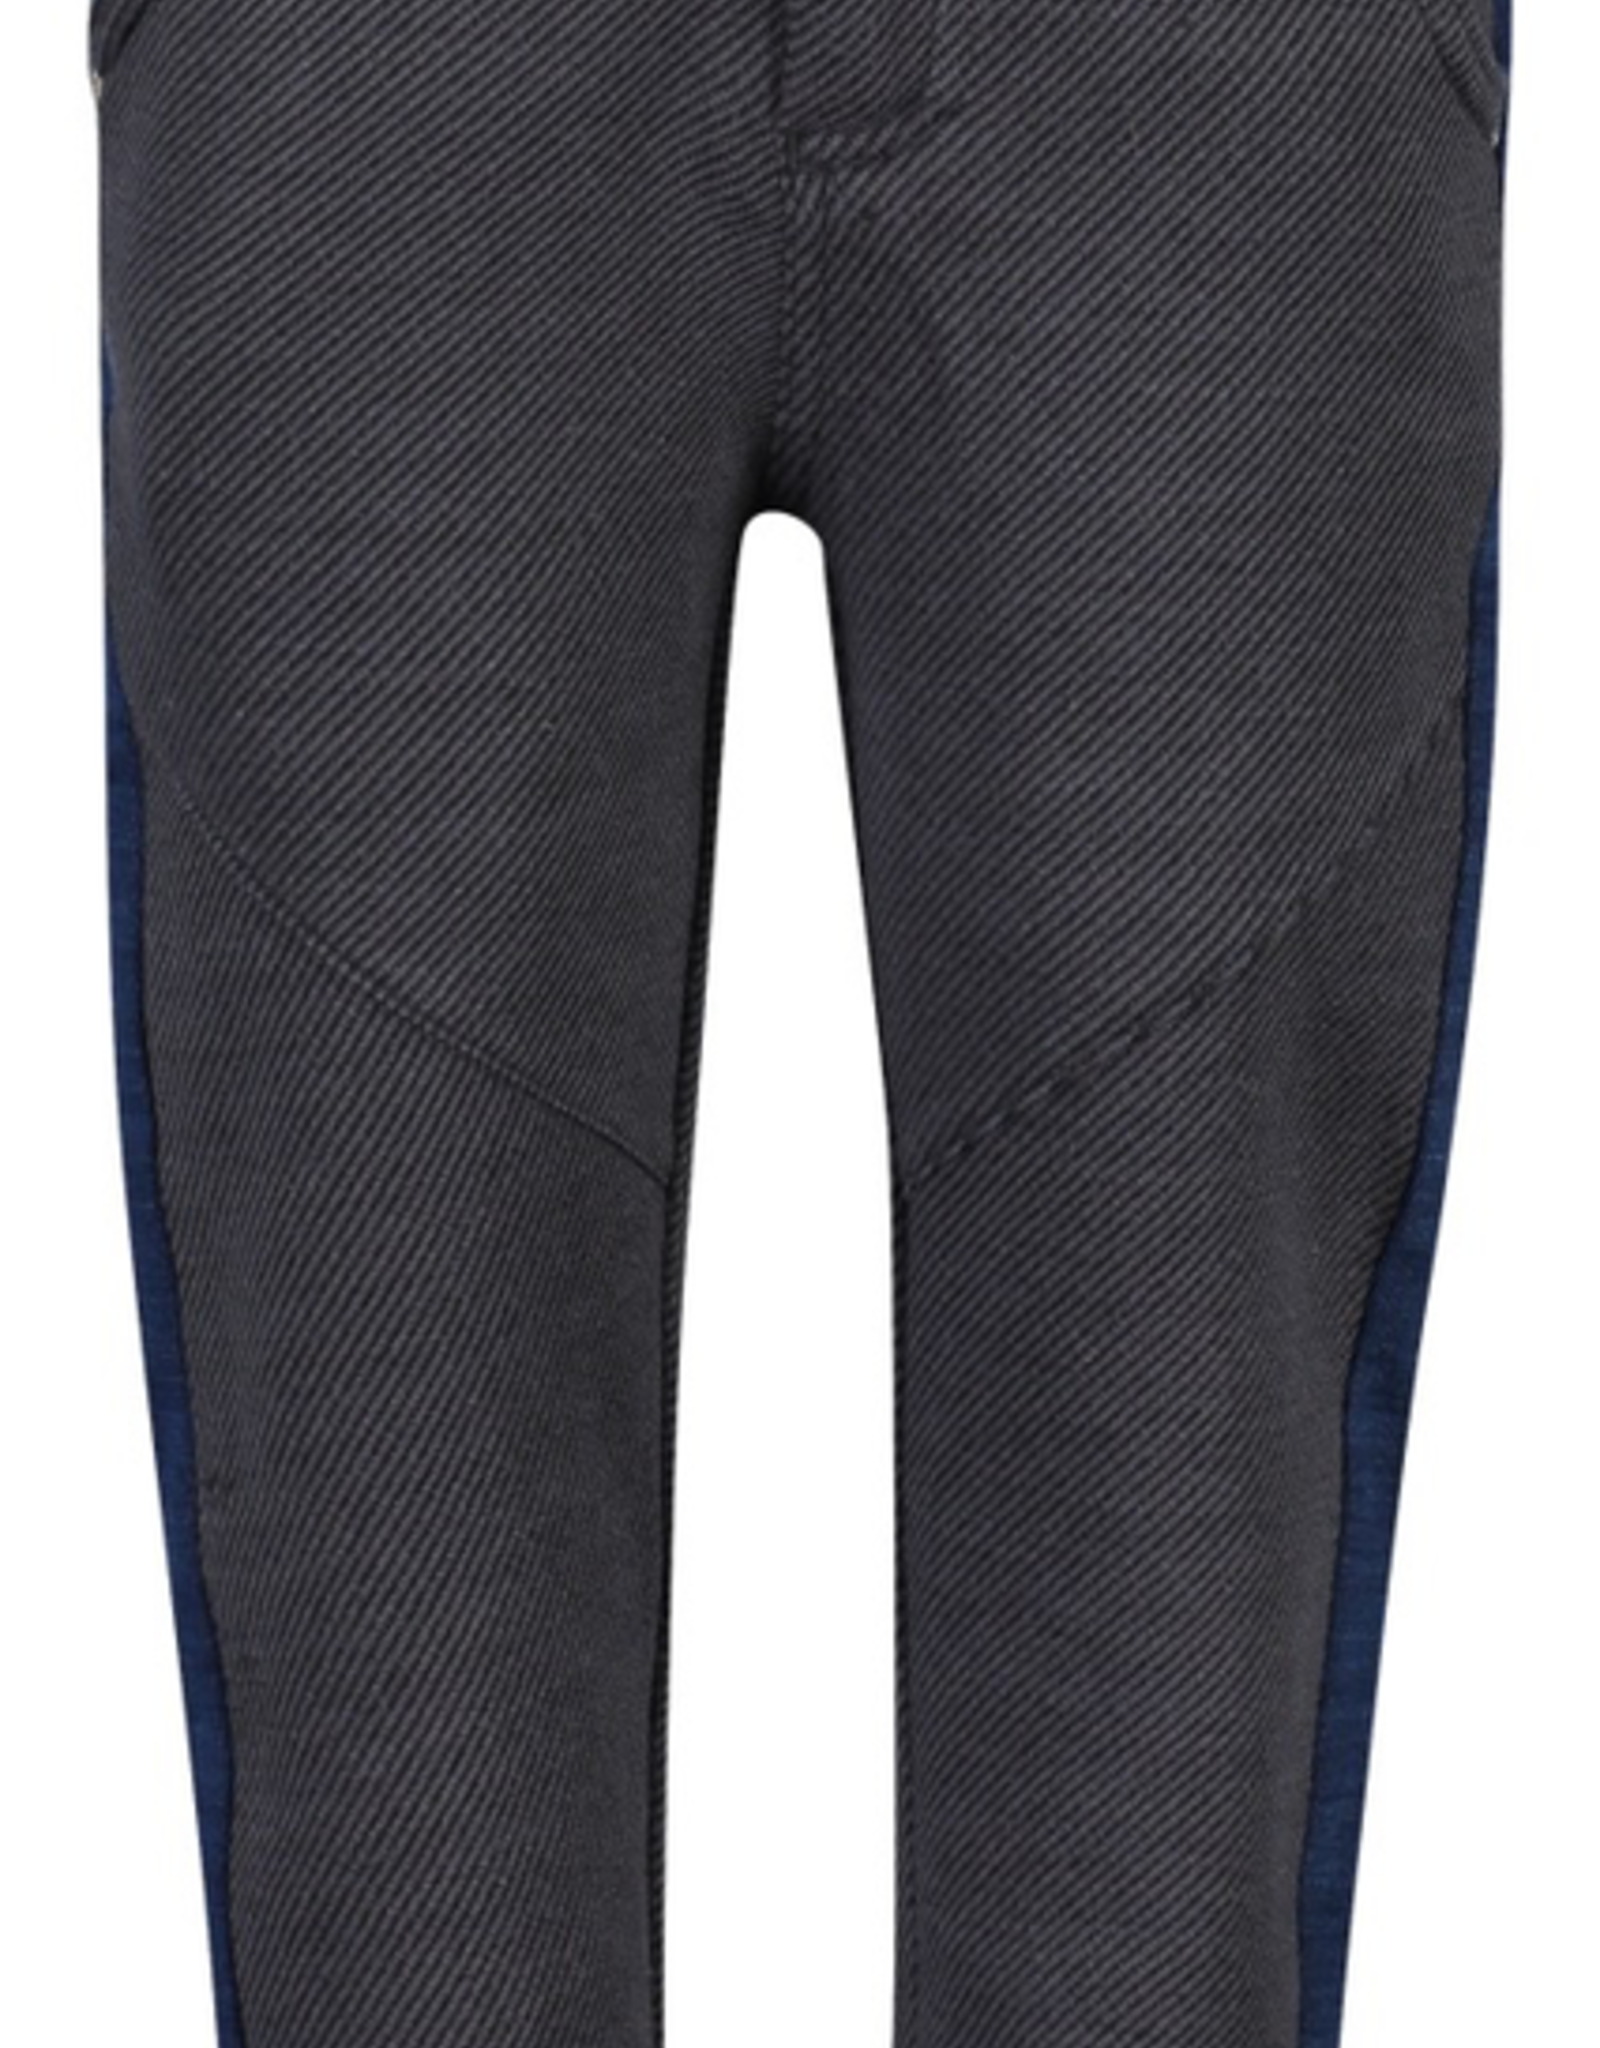 Noppies Kids Varden Slim Pants for Boy